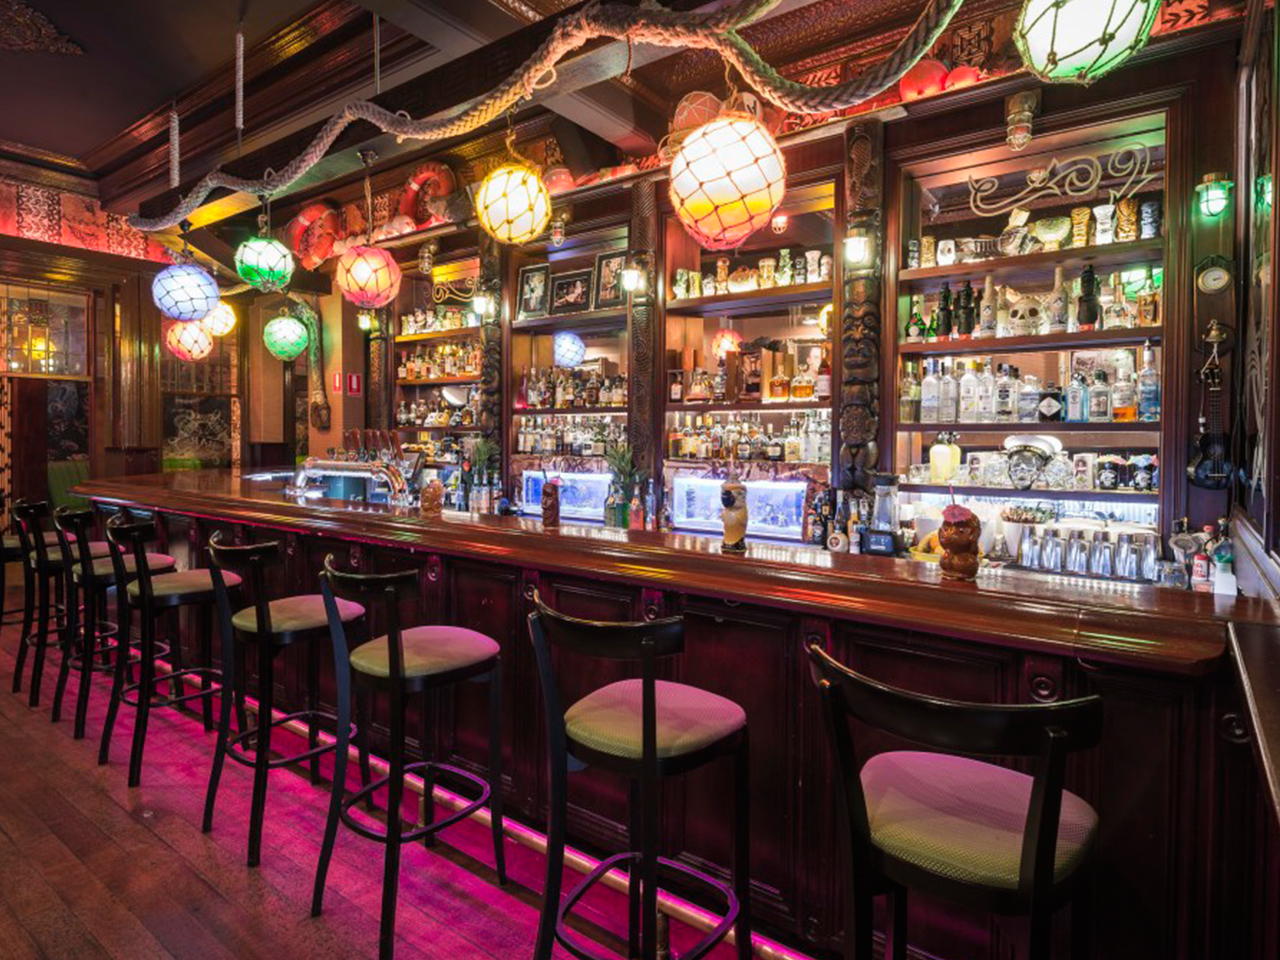 Inside The Party Venue Bar With High Chairs, Lanterns And Variety Of Liquors Displayed